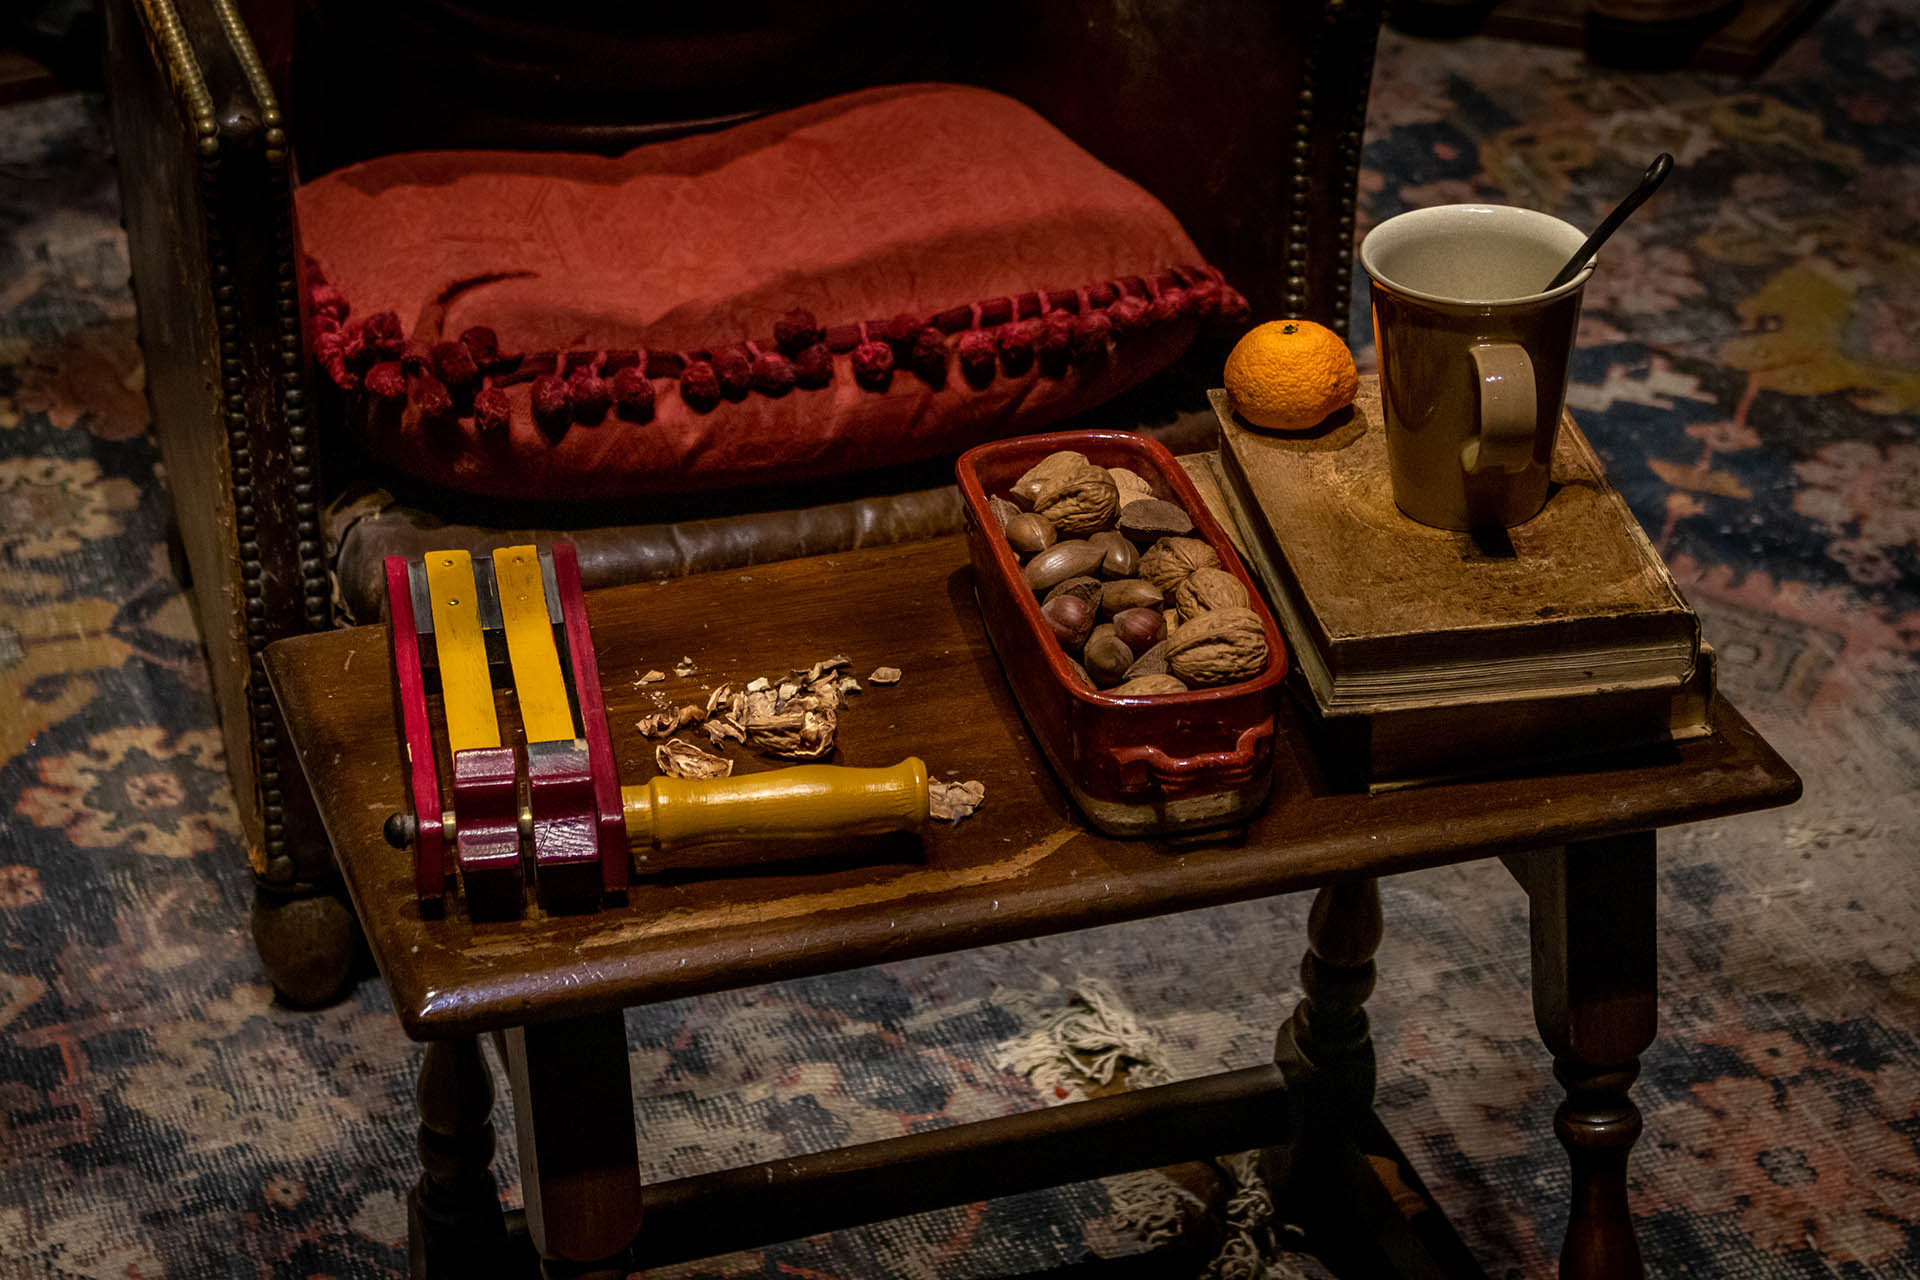 Notenkraker op tafel in de leerlingenkamer van Gryffindor in de Studio Tour van Harry Potter